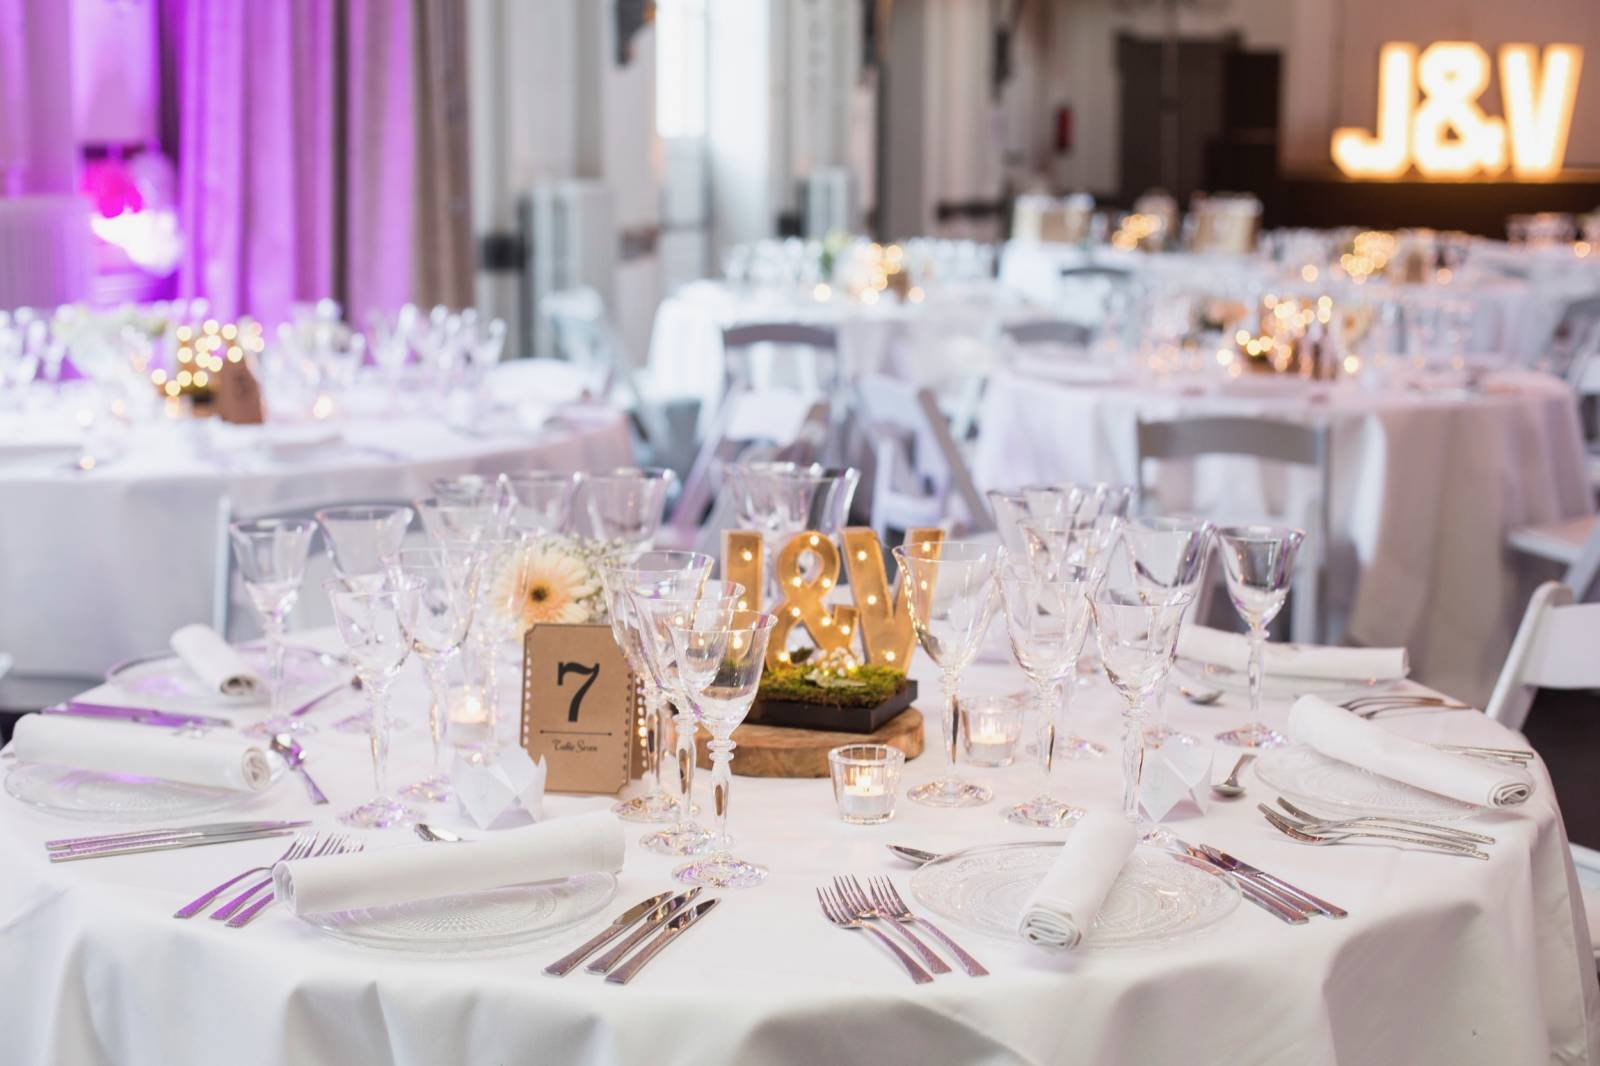 J&M Catering - Cateraar - Traiteur - House of Events - 2